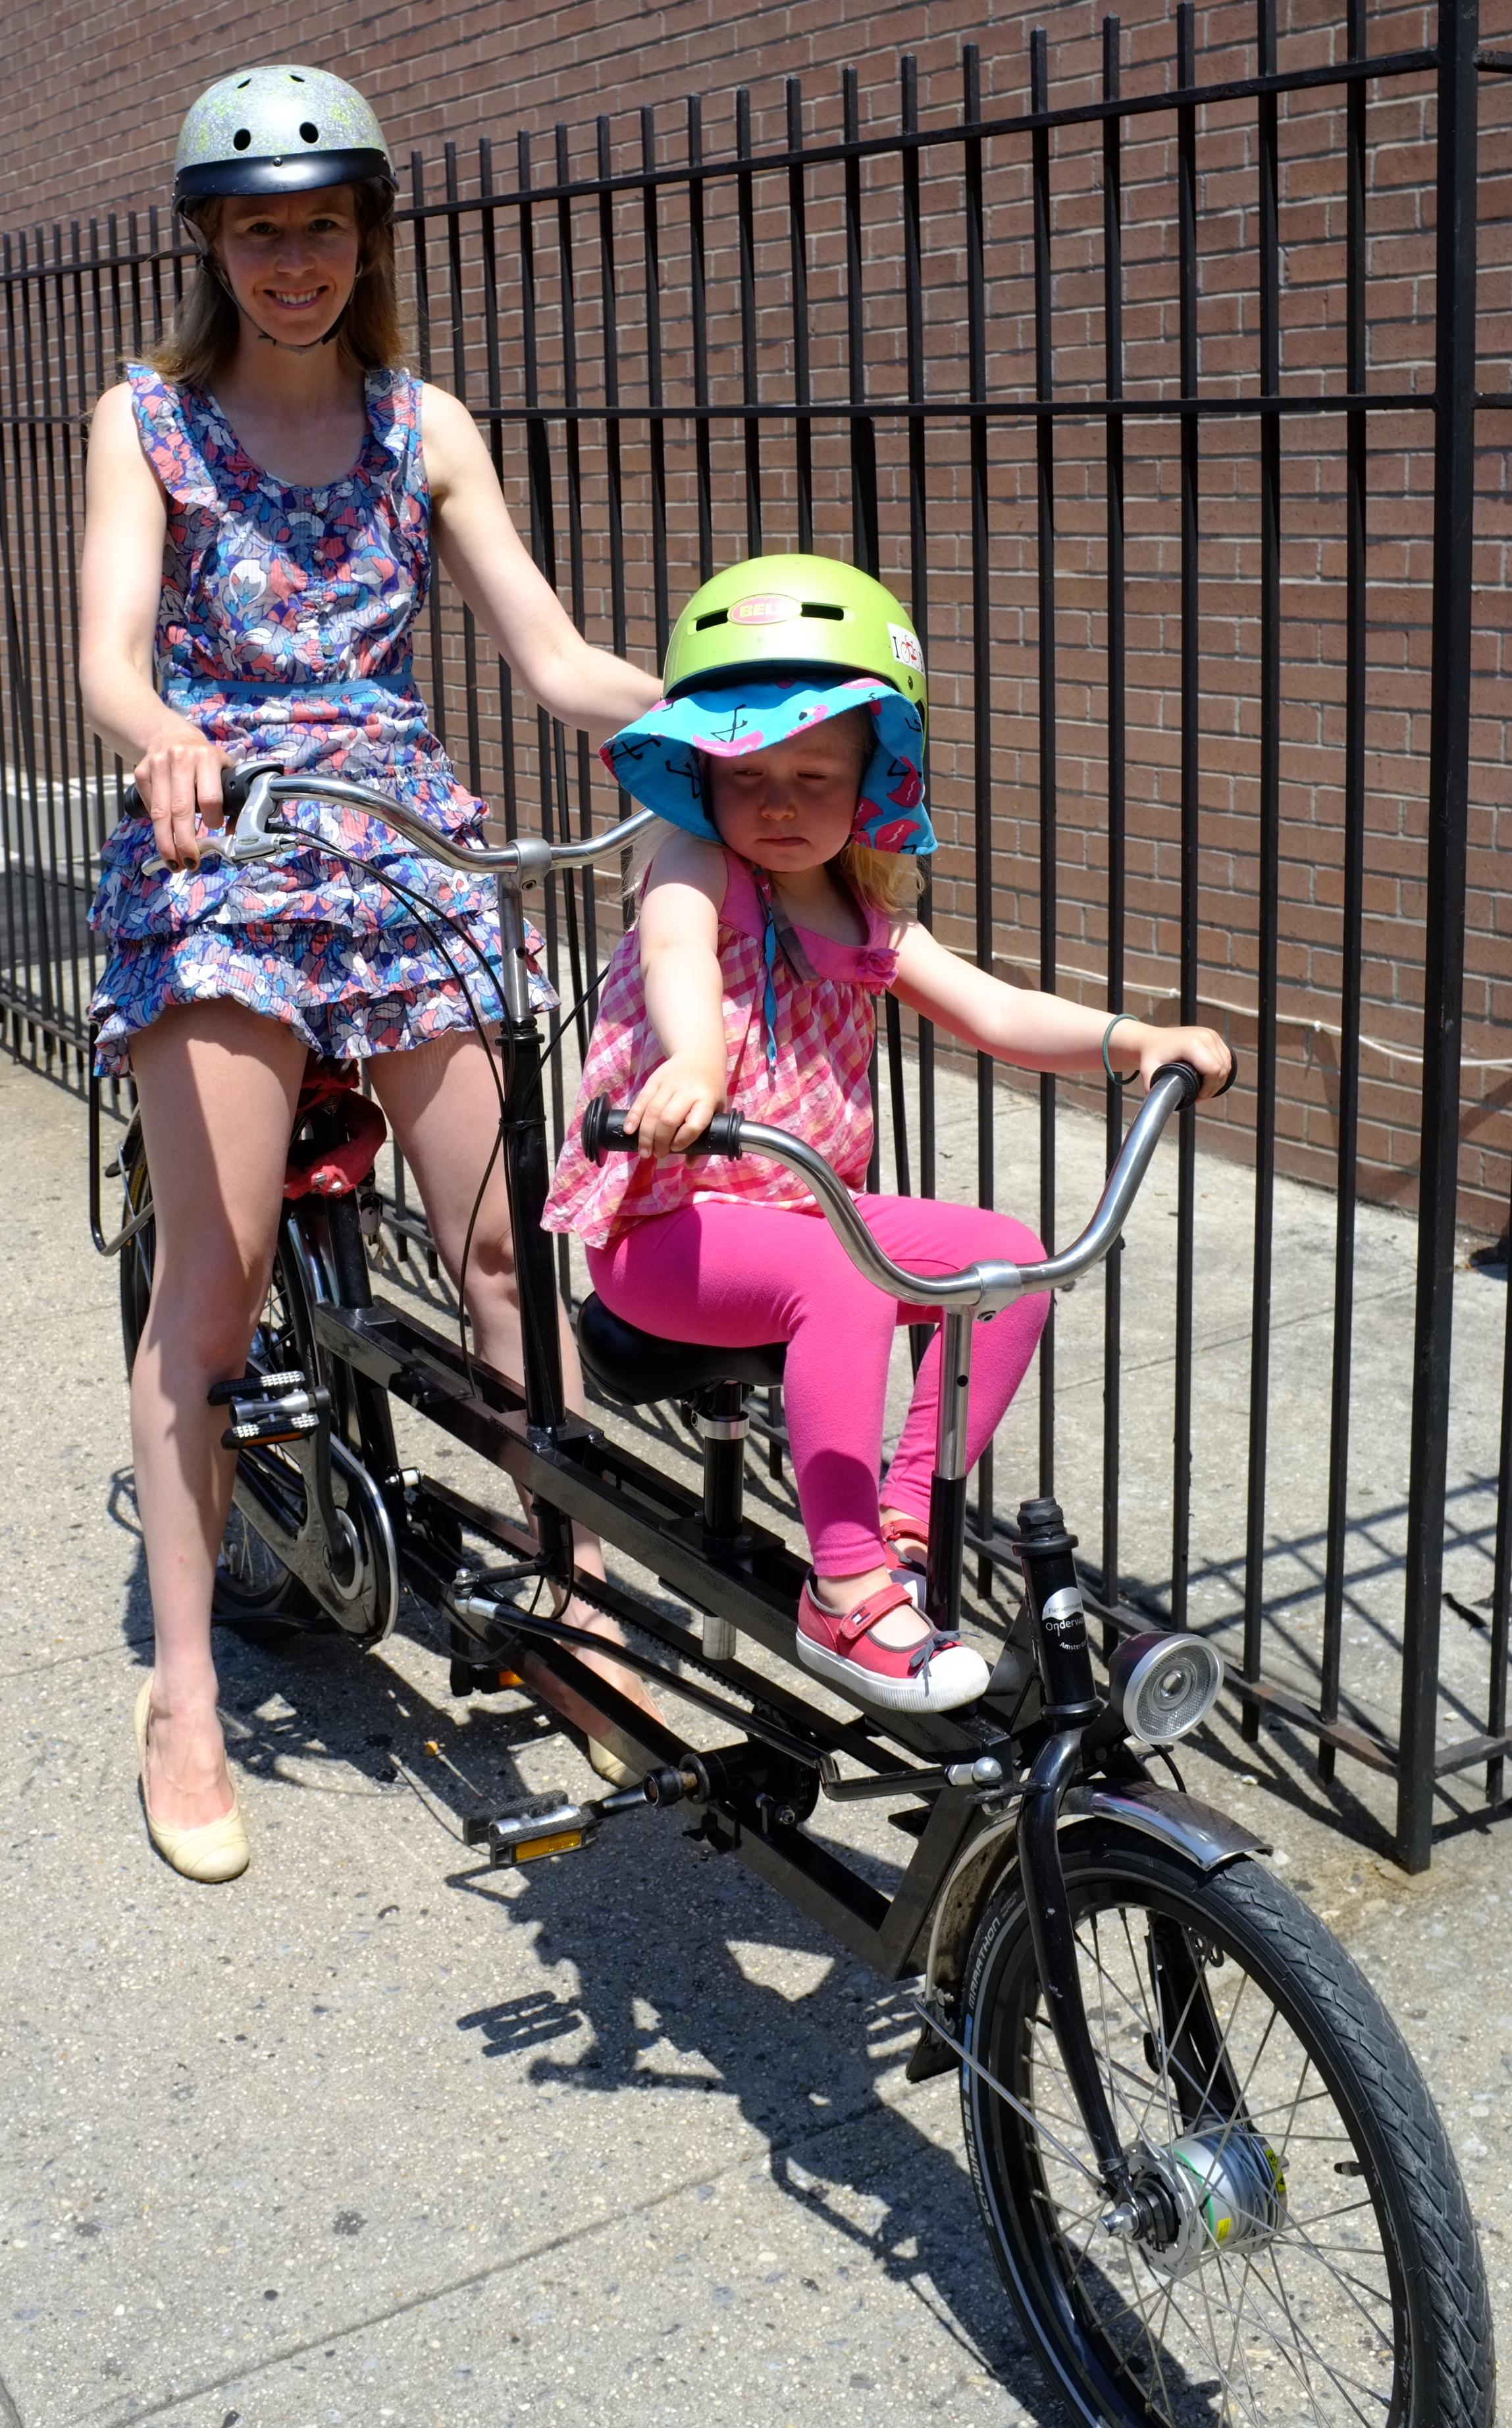 c'mon, you know you've always wanted to ride an Onderwater family tandem.And now you can, courtesy of Rolling Orange rentals in Brooklyn!